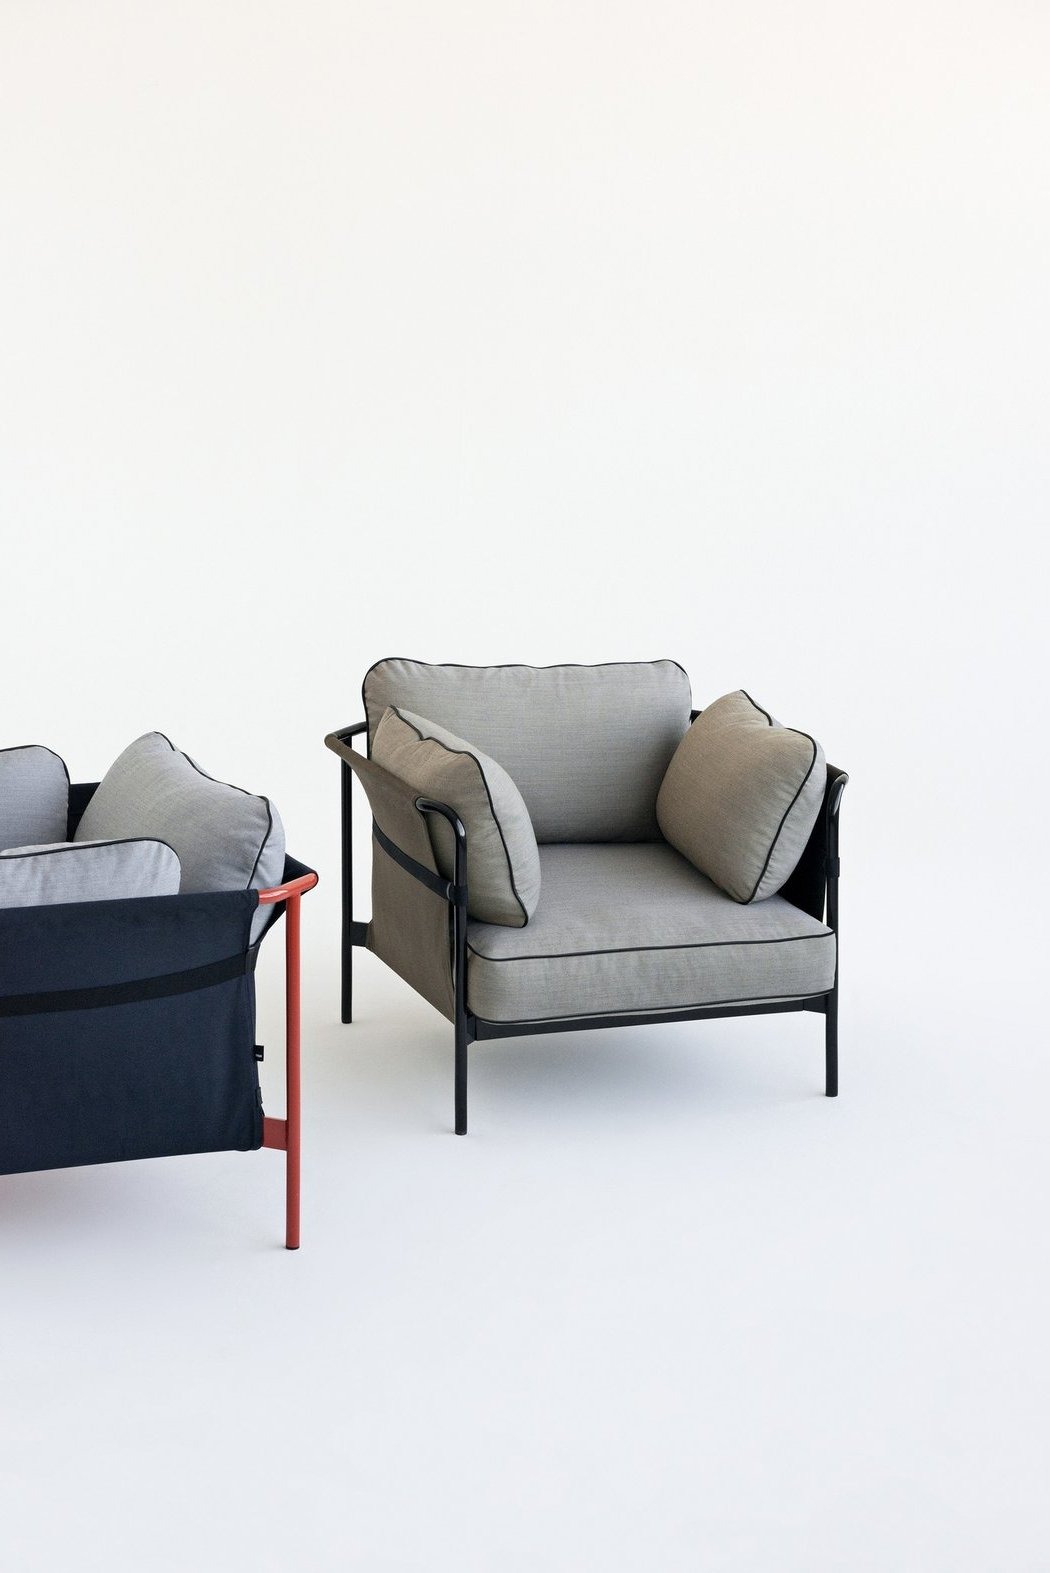 Well Known Rocking Sofa Chairs In Armchair : Best Sleeper Chairs Armchair With Ottoman Sofa Chair (View 18 of 20)